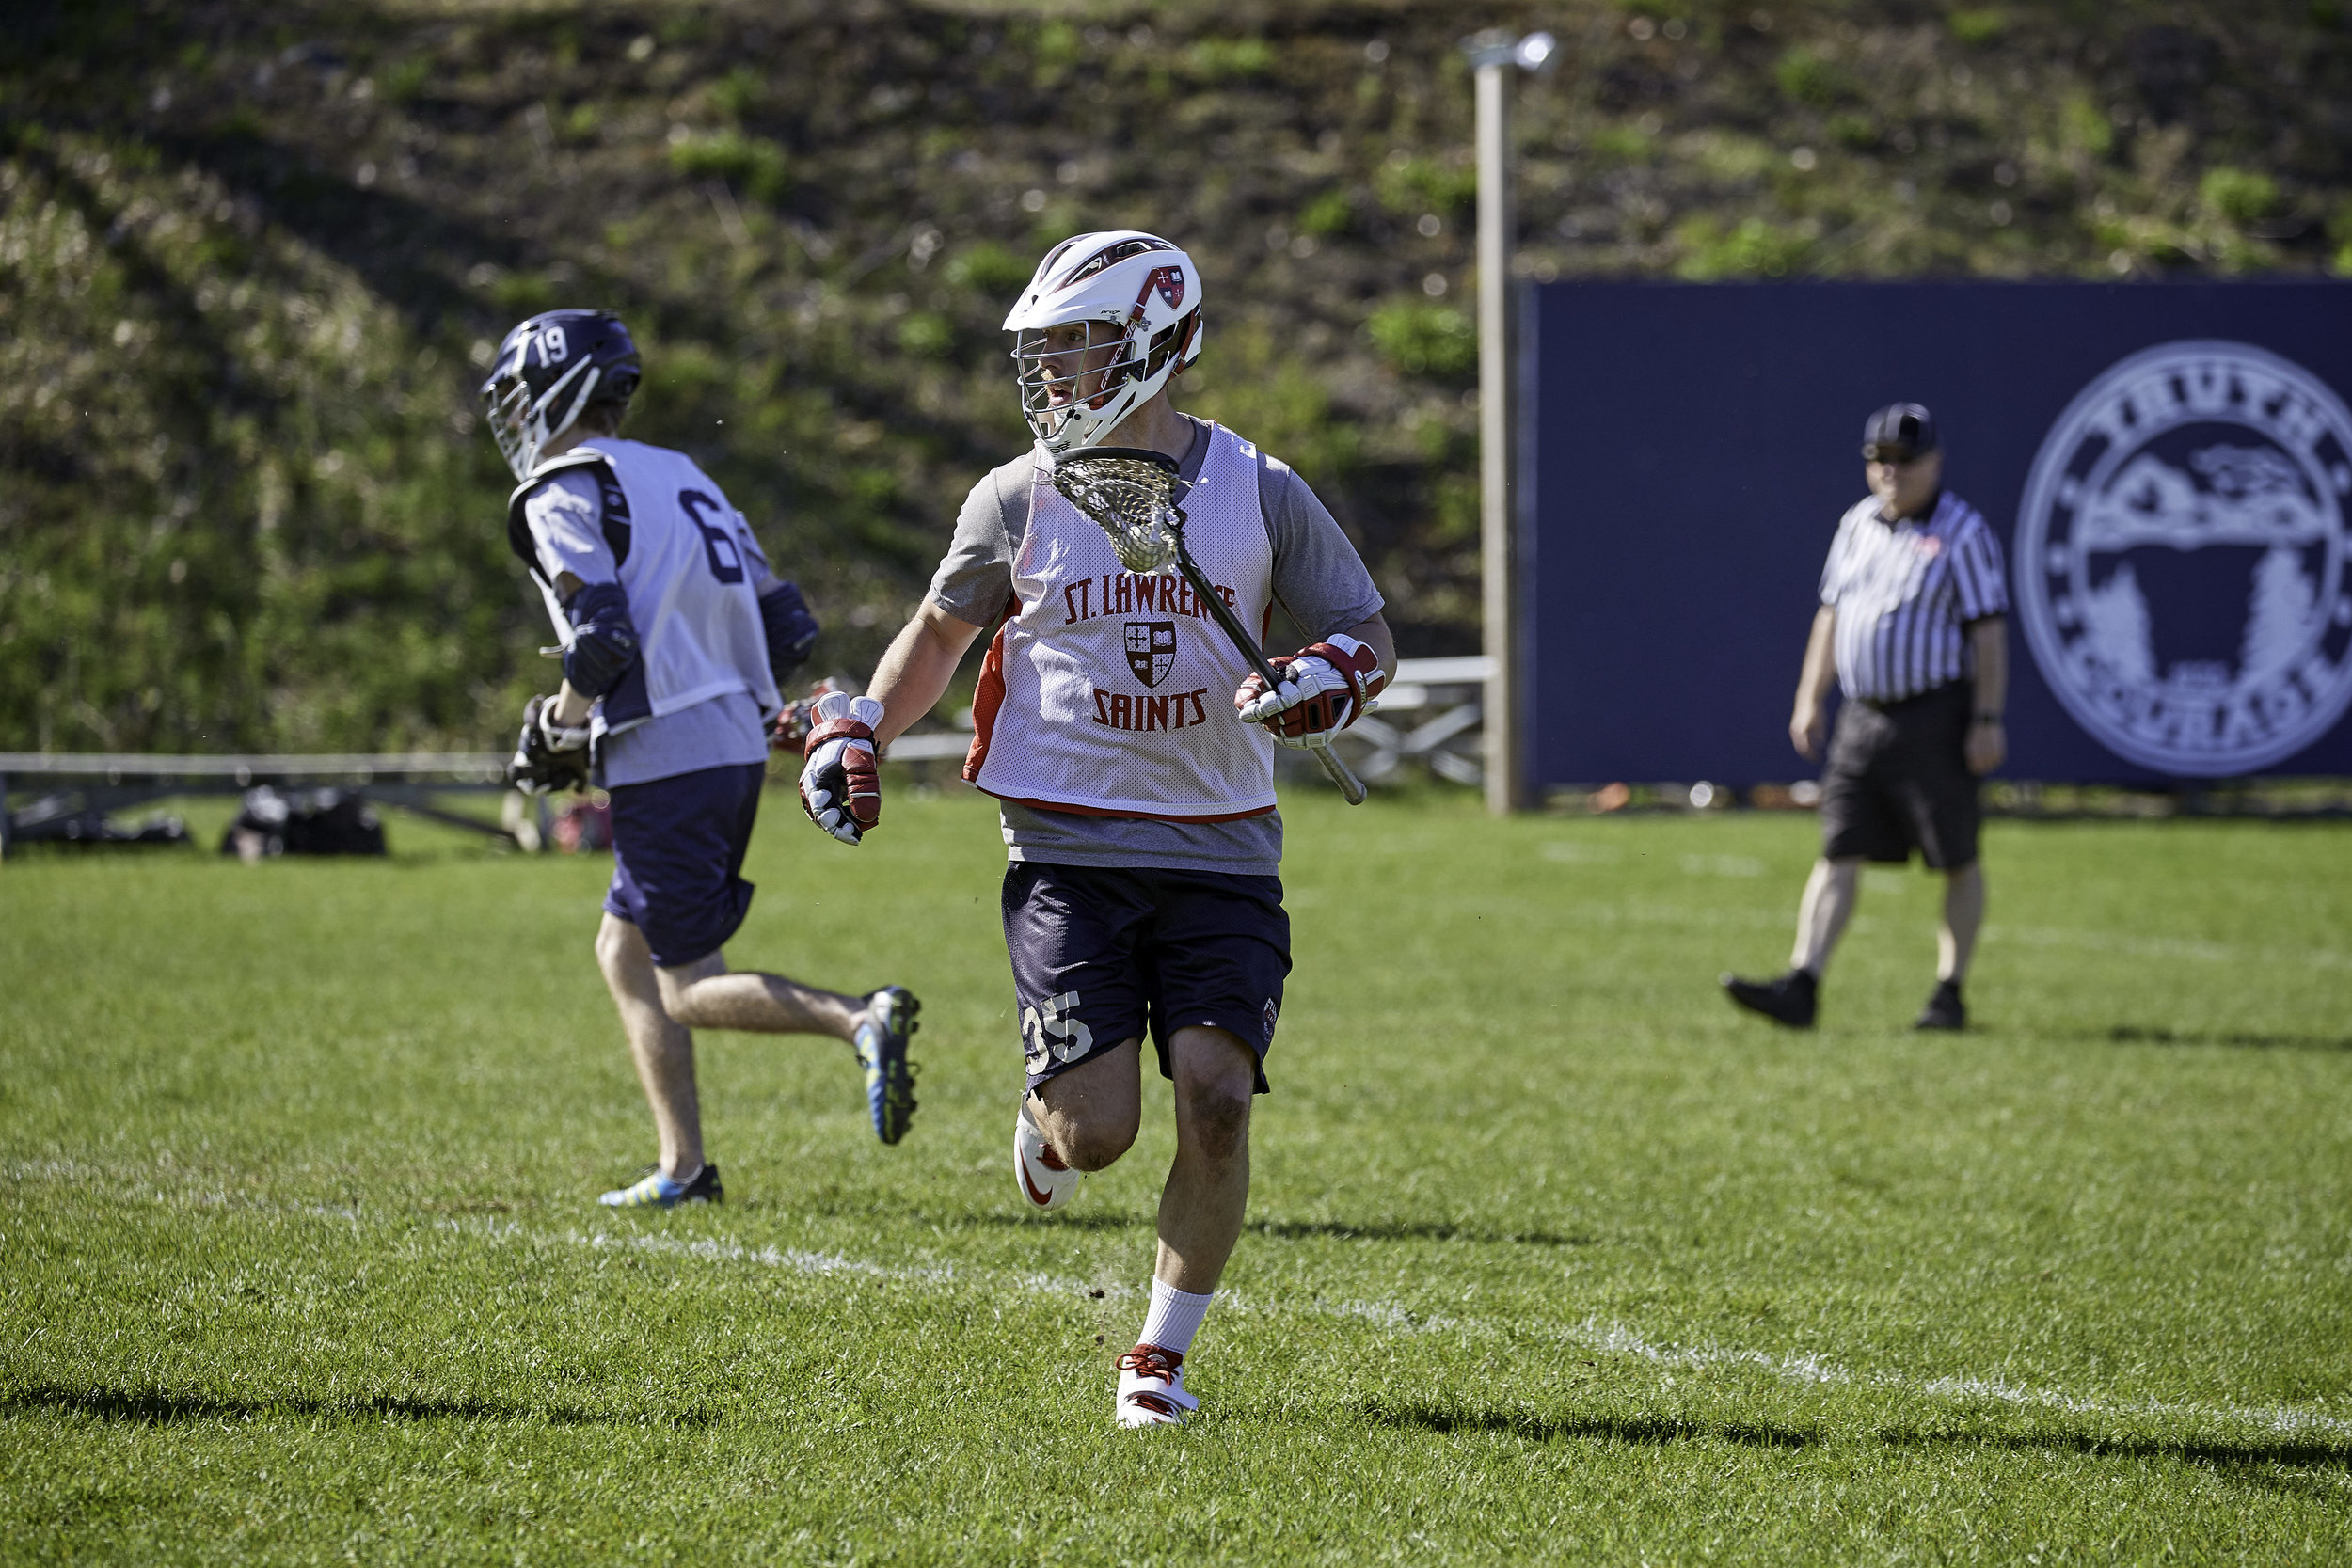 Mike Walter Alumni Game - May 18 2019 - 0213.jpg